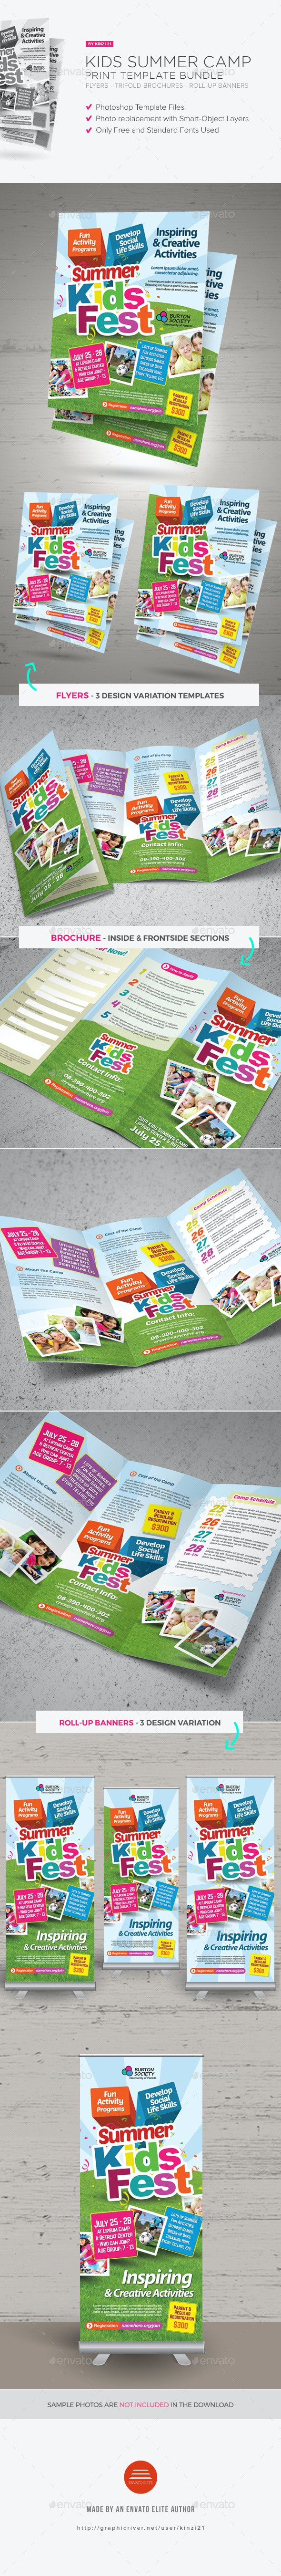 Kids Summer Camp Print Bundle - Brochures Print Templates